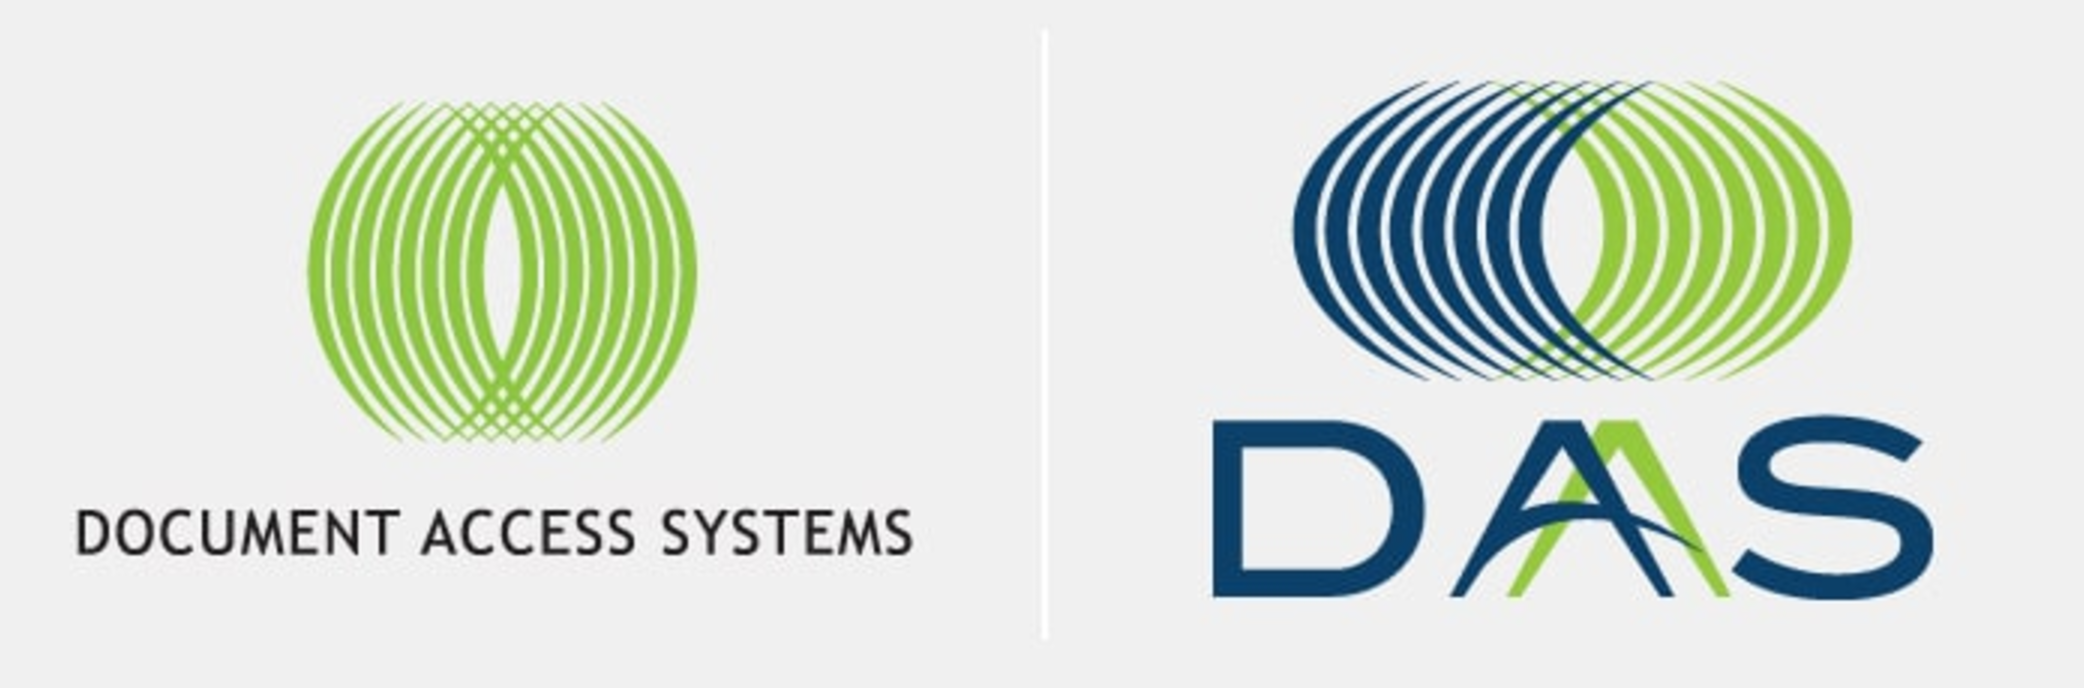 Document Access Systems logo, before and after